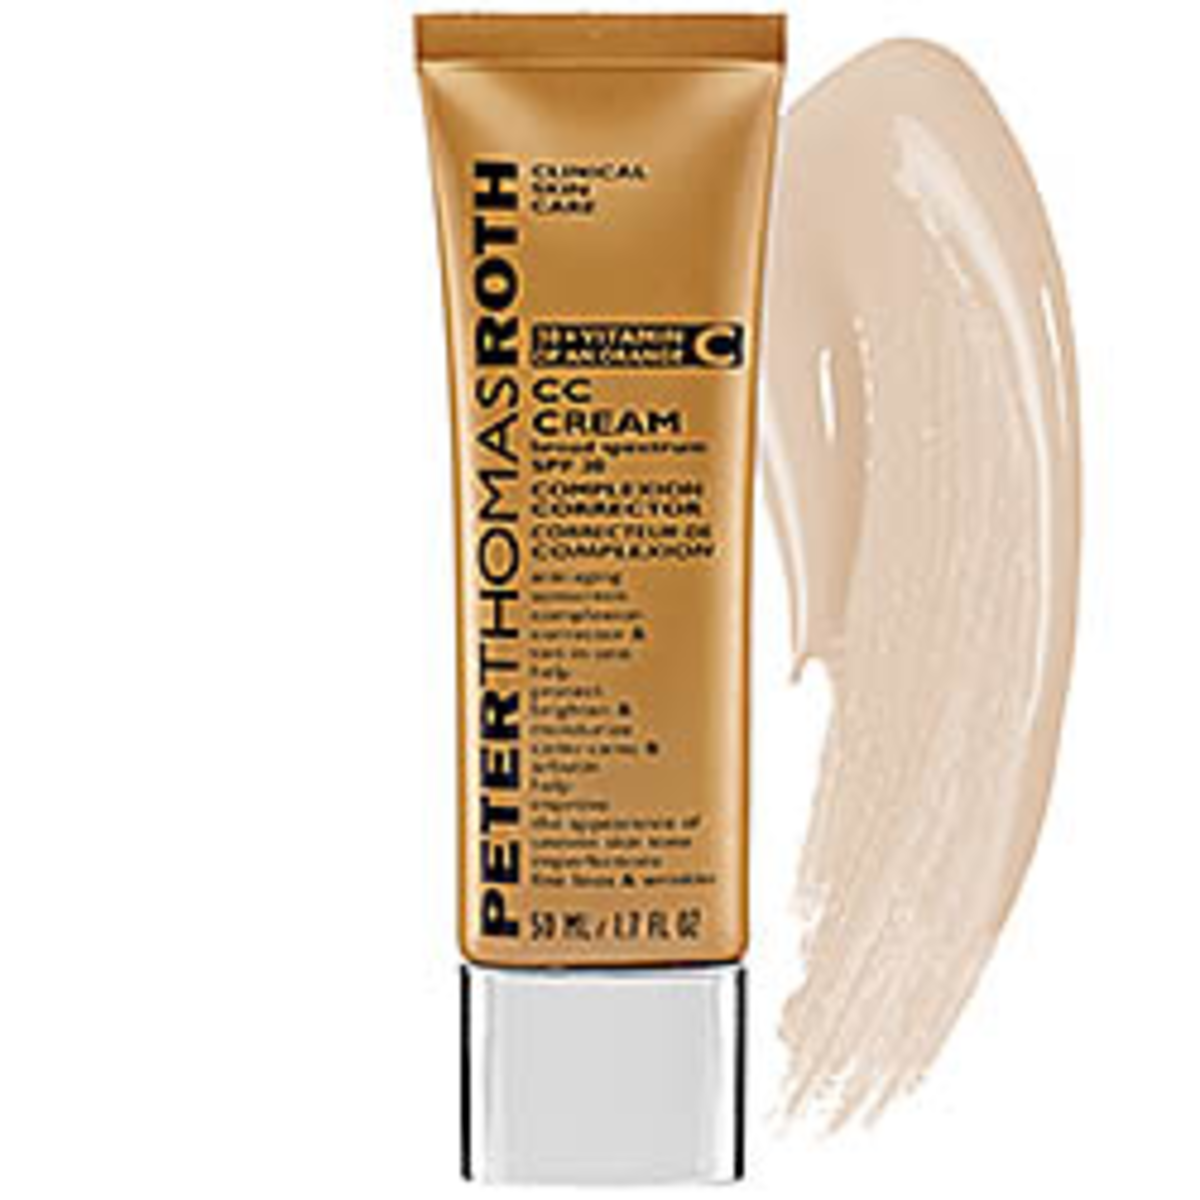 Peter Thomas Roth CC Cream